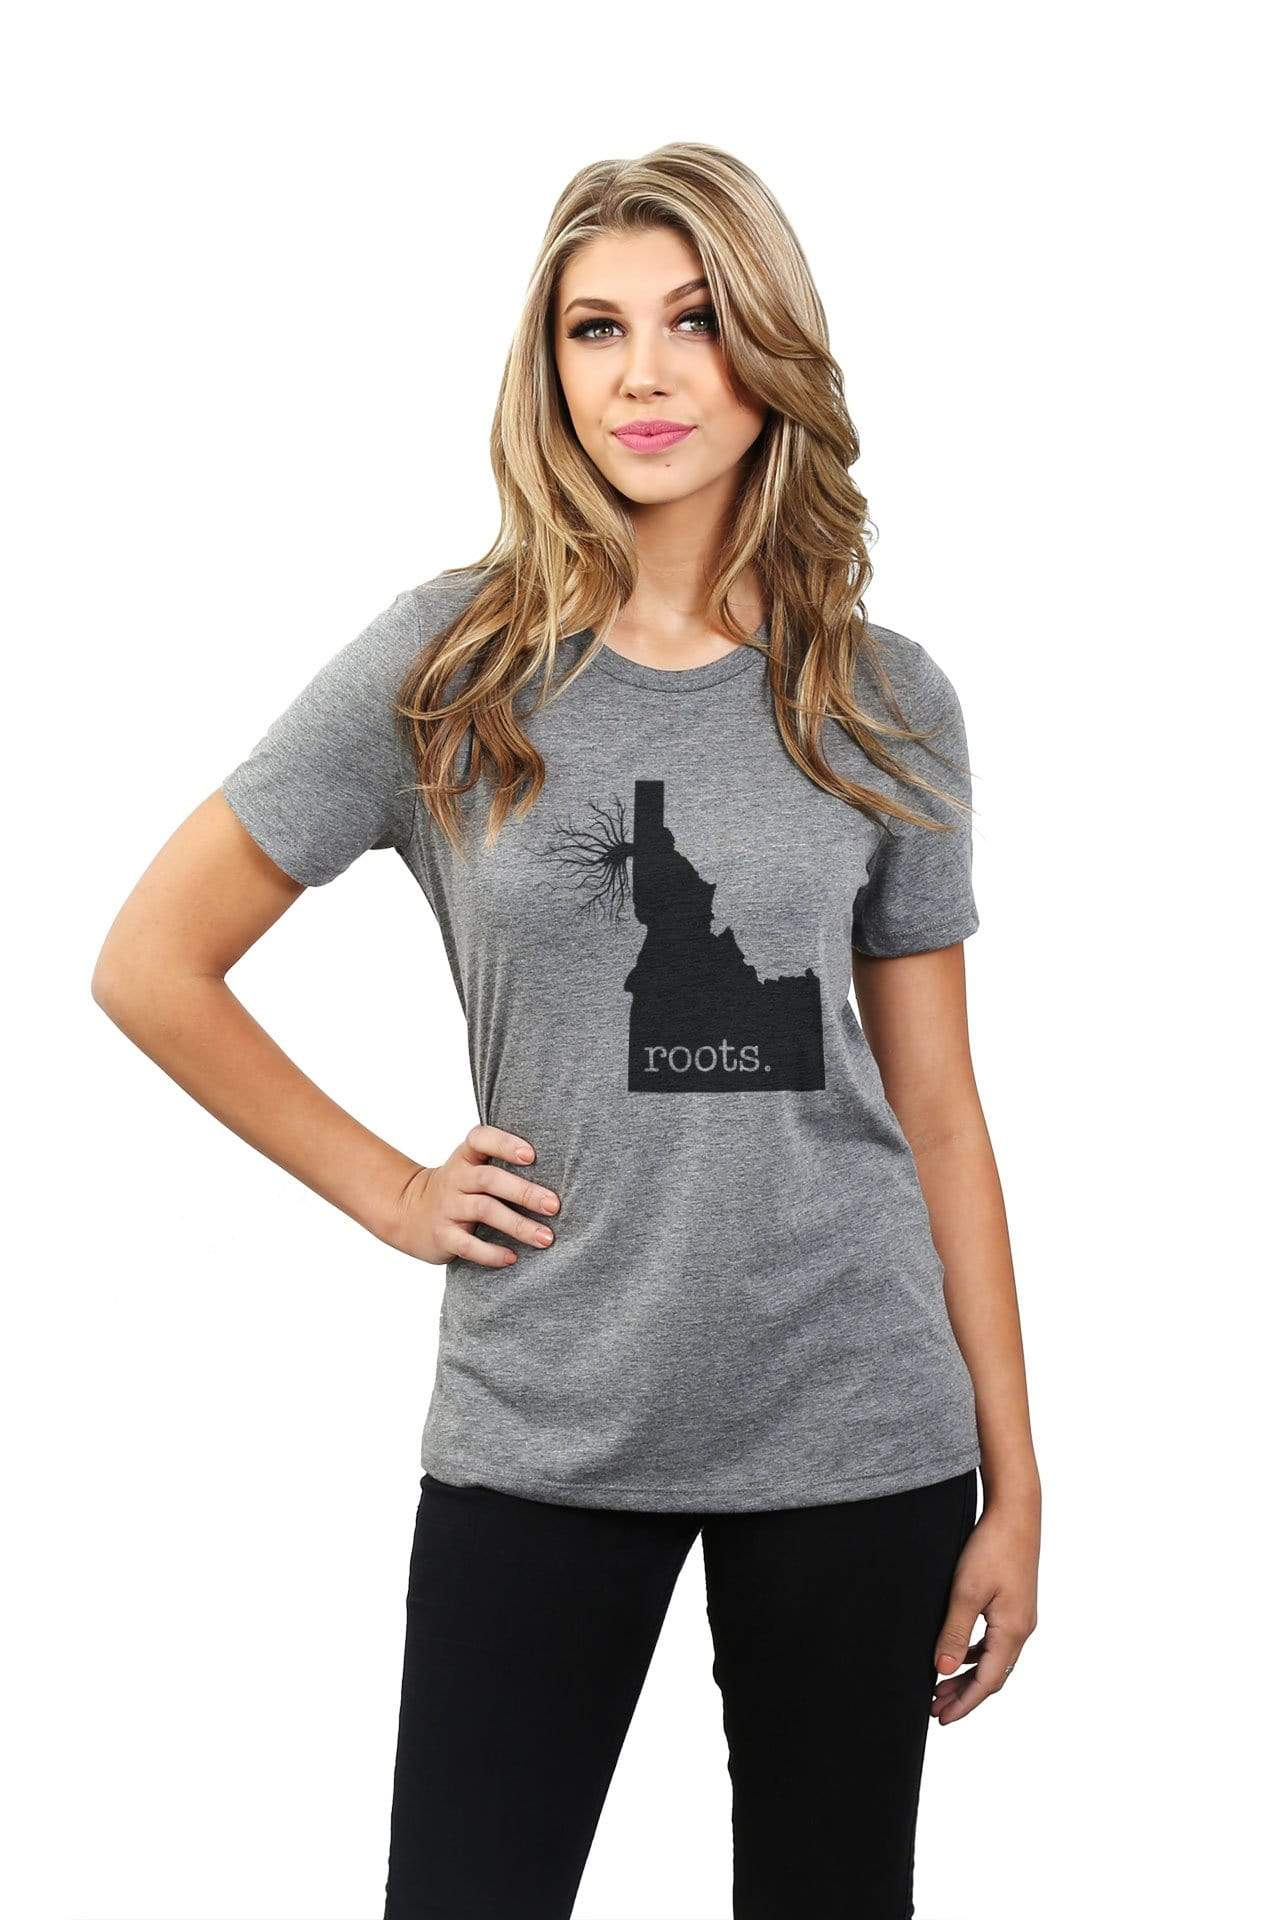 Home Roots State Idaho ID Women Heather Grey Relaxed Crew T-Shirt Tee Top